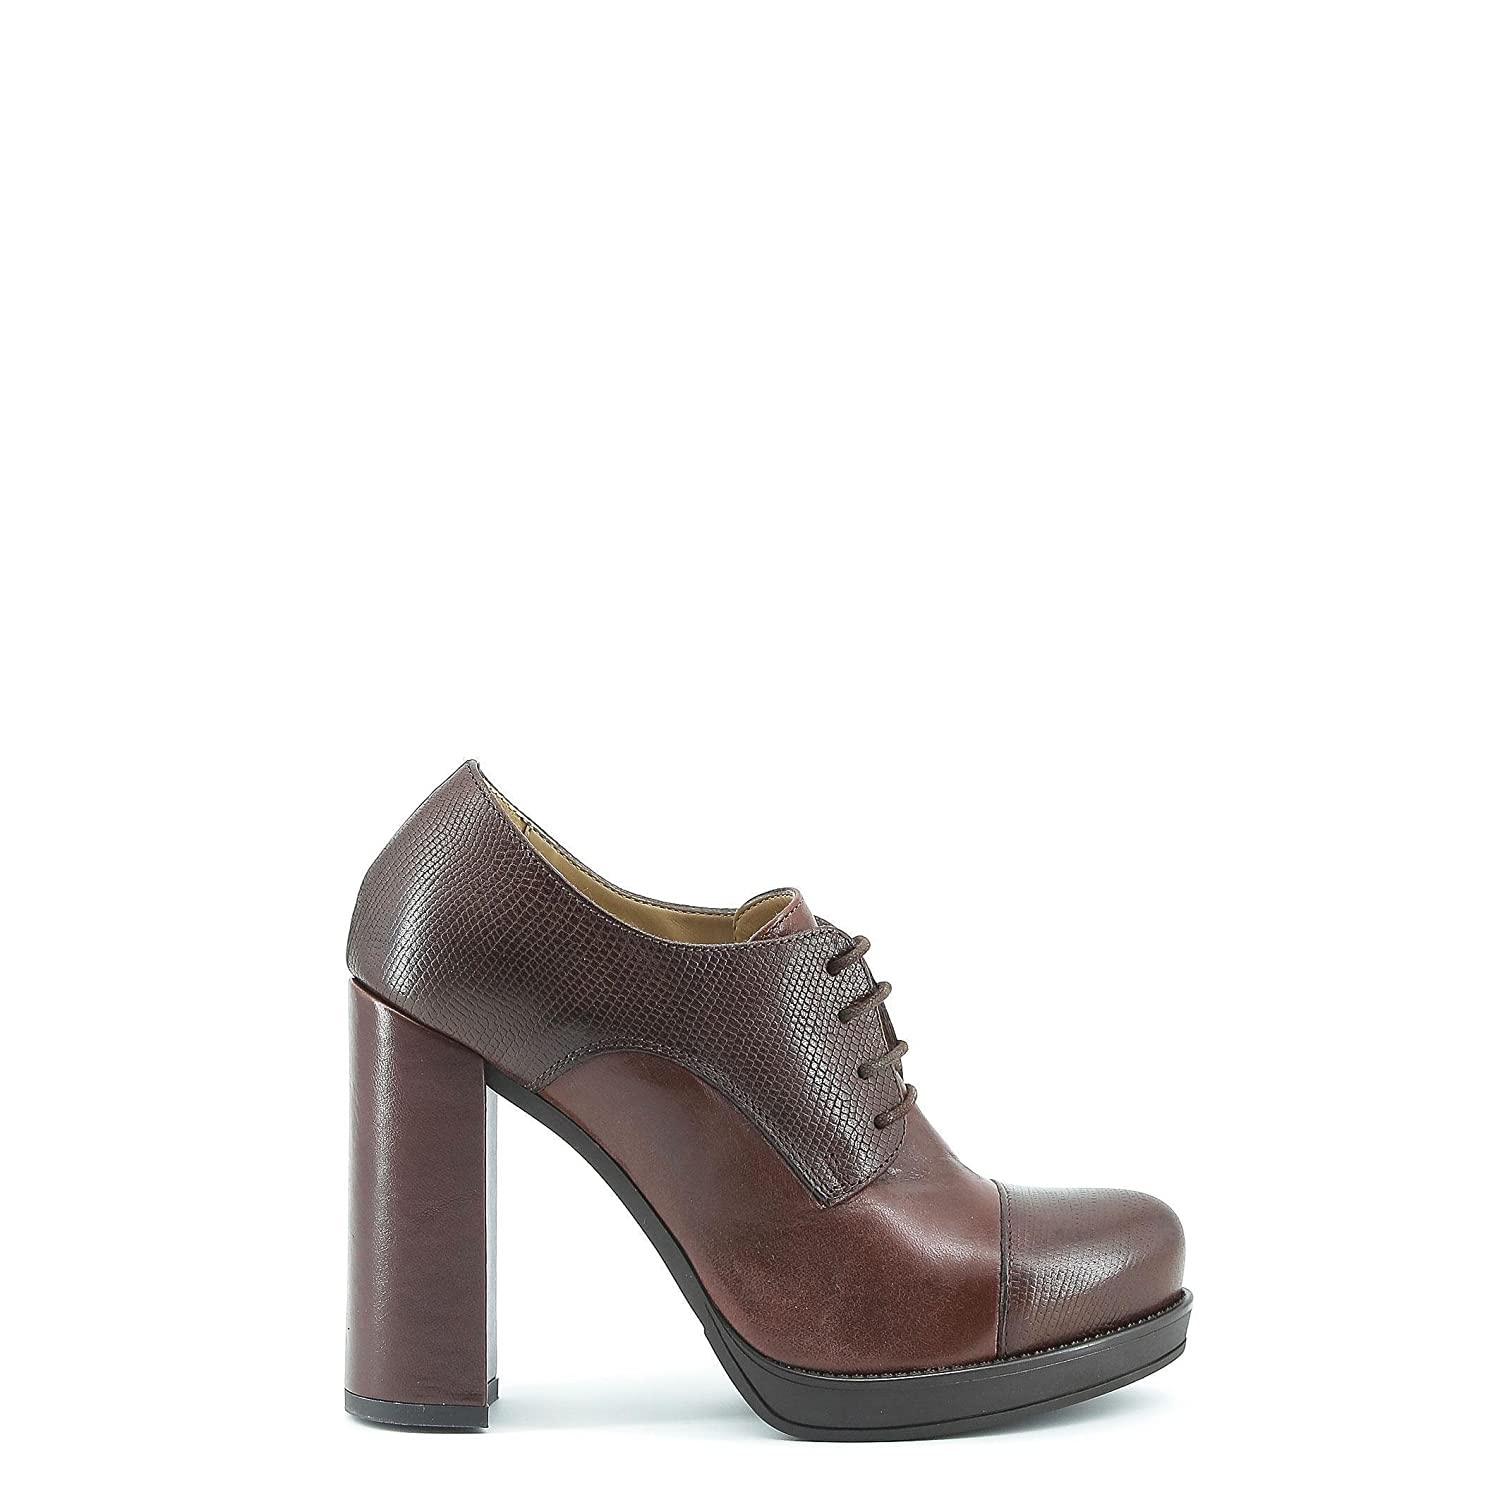 Made In Italia Shoes - Zapatos Mujer 38 EU|Chocolate